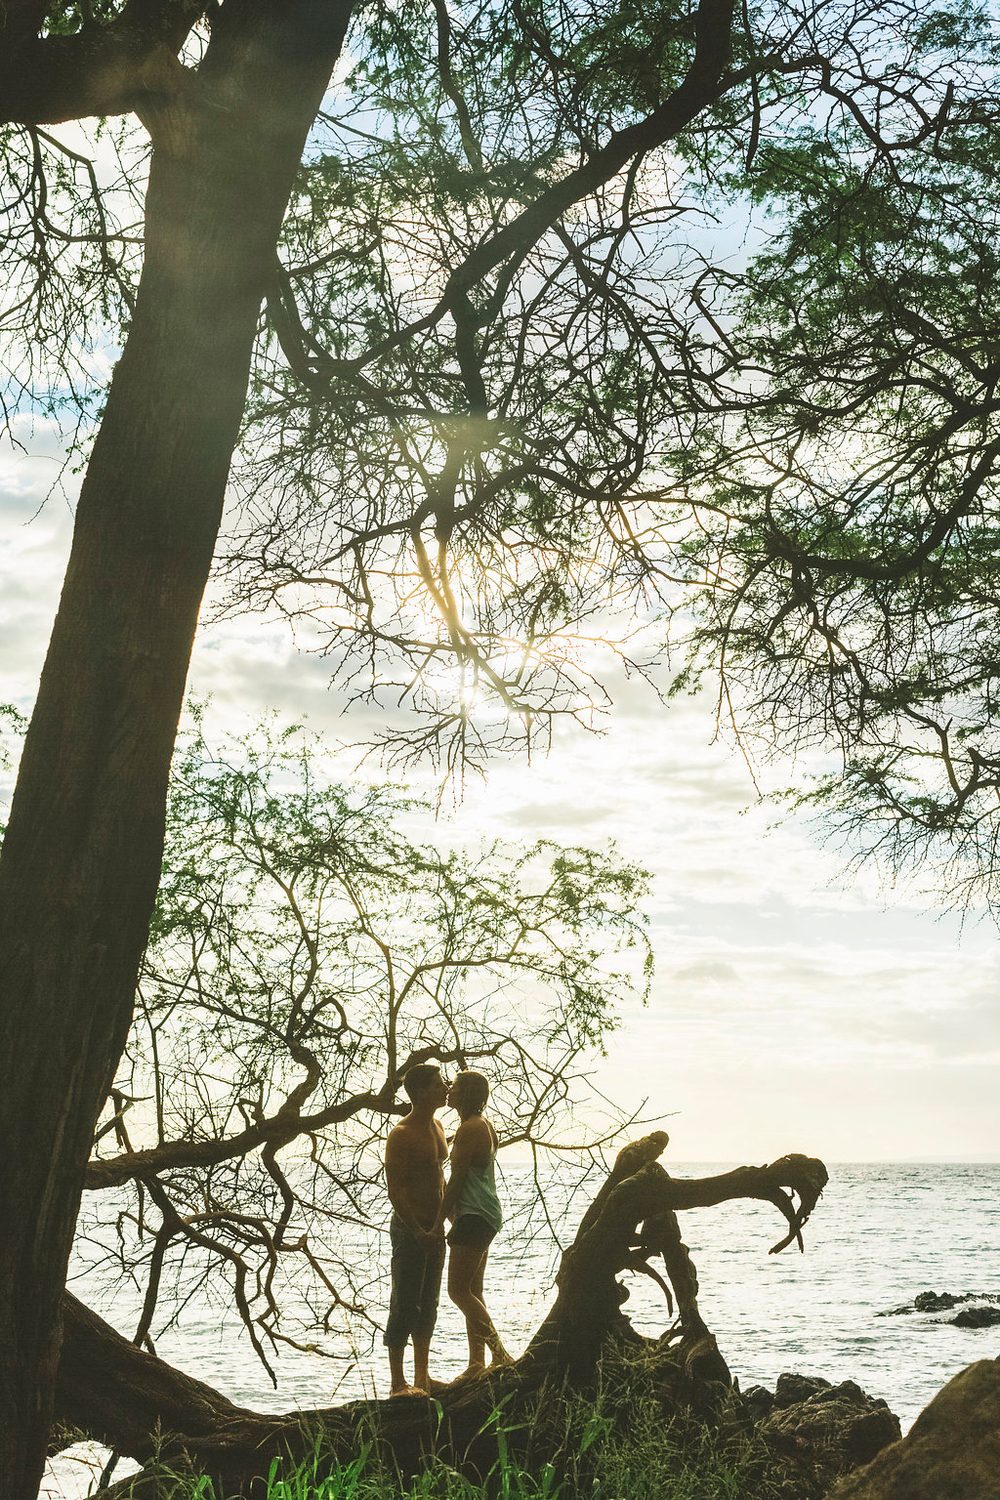 angie-diaz-photography-maui-engagement-sarah-mathias-19.jpg